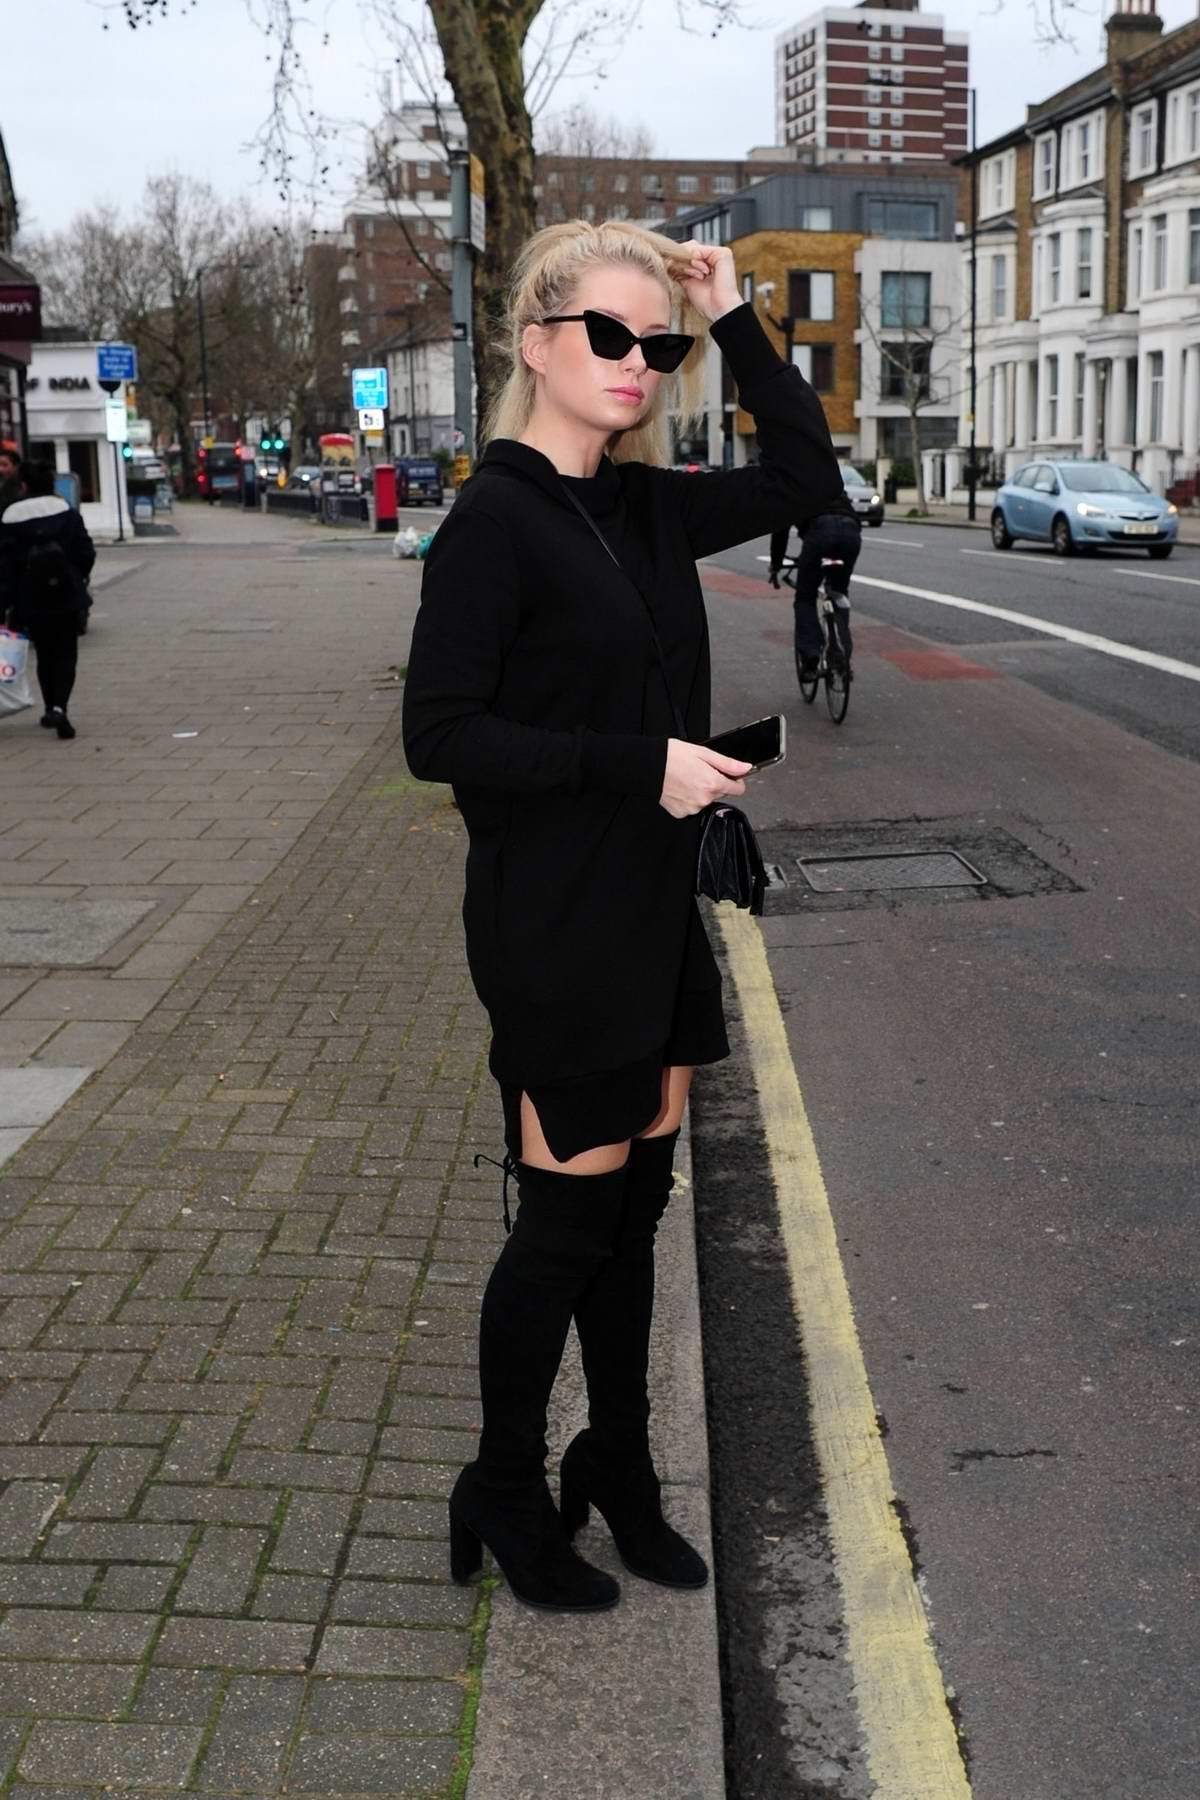 Lottie Moss dressed in all black as she leaves the cosmetic clinic 'Dermadoc' in London, UK